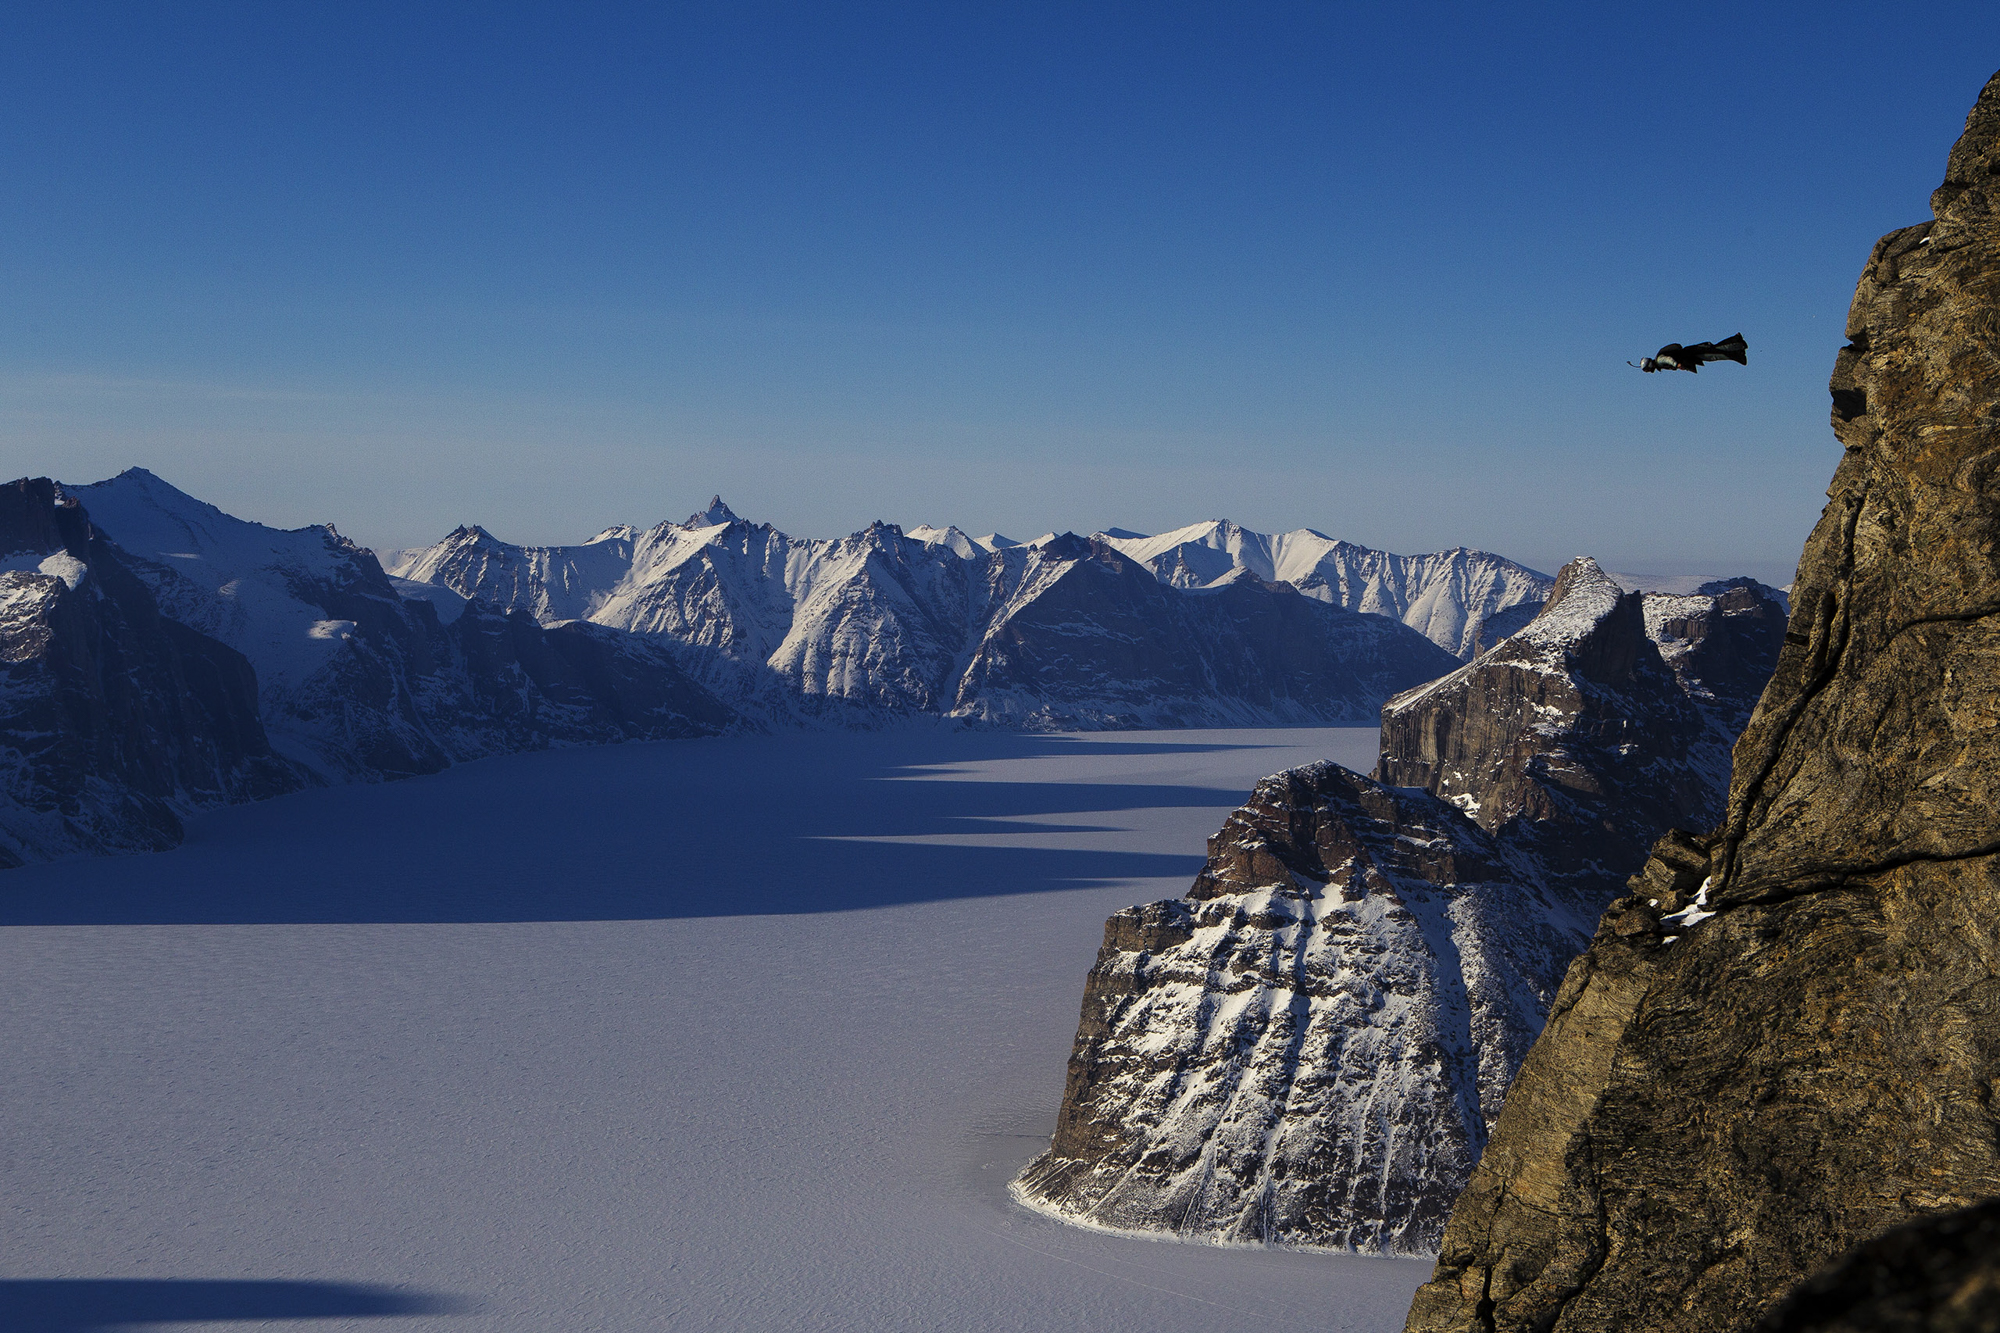 Overlooking Sam Ford Fjord, Jim Mitchell leaps from Ottawa Peak in his wingsuit on Baffin Island/Photo by Krystle Wright